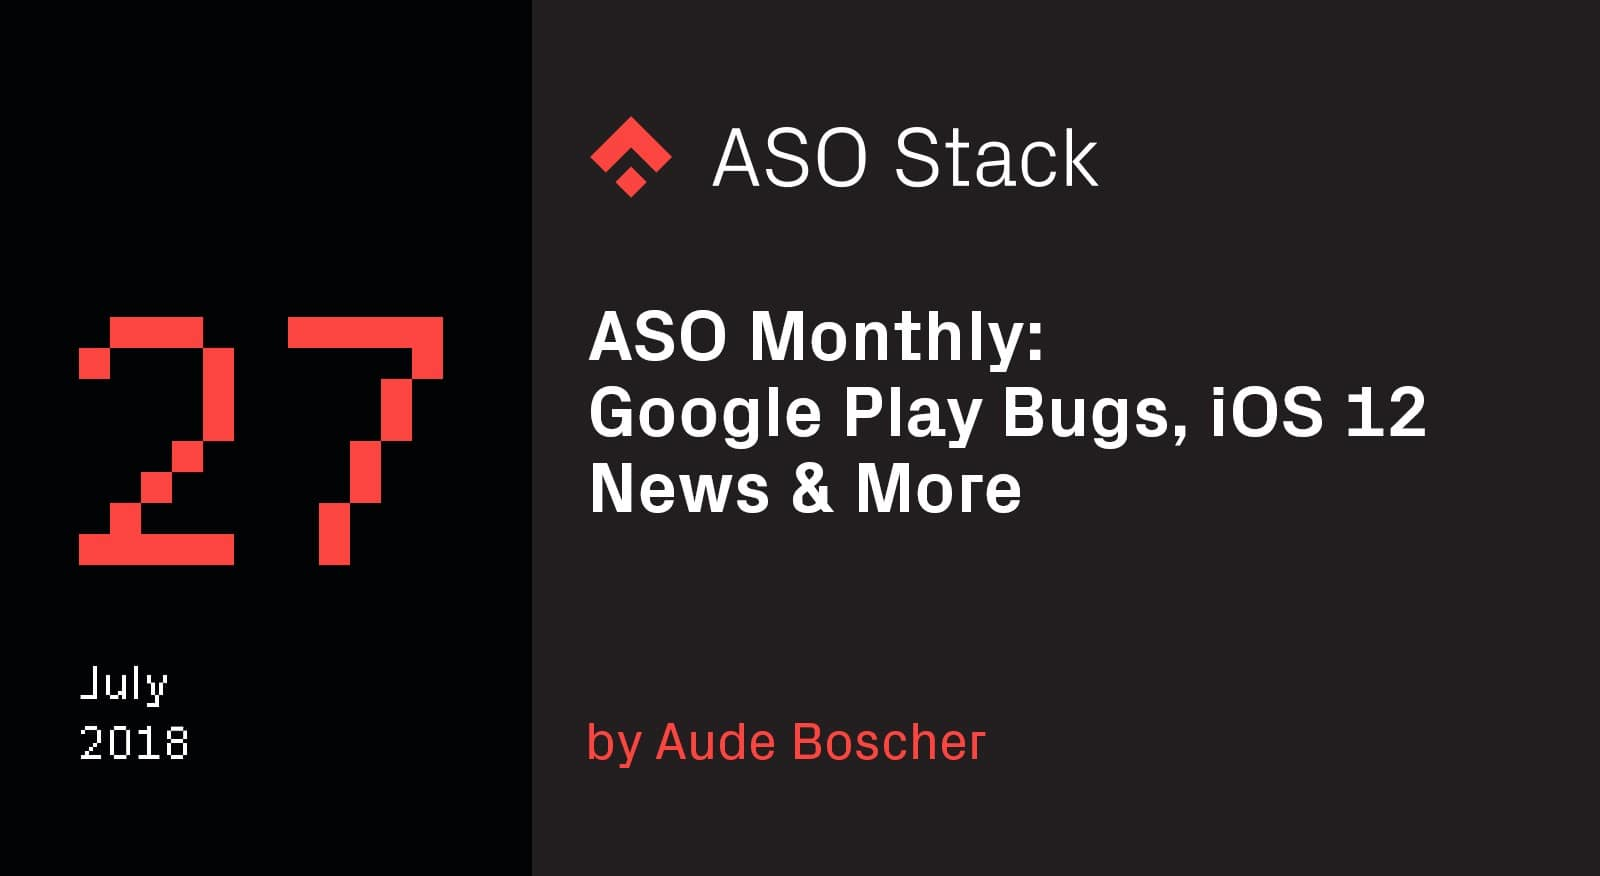 ASO Monthly #27 July 2018- Google Play Bugs, iOS 12 News & More -min